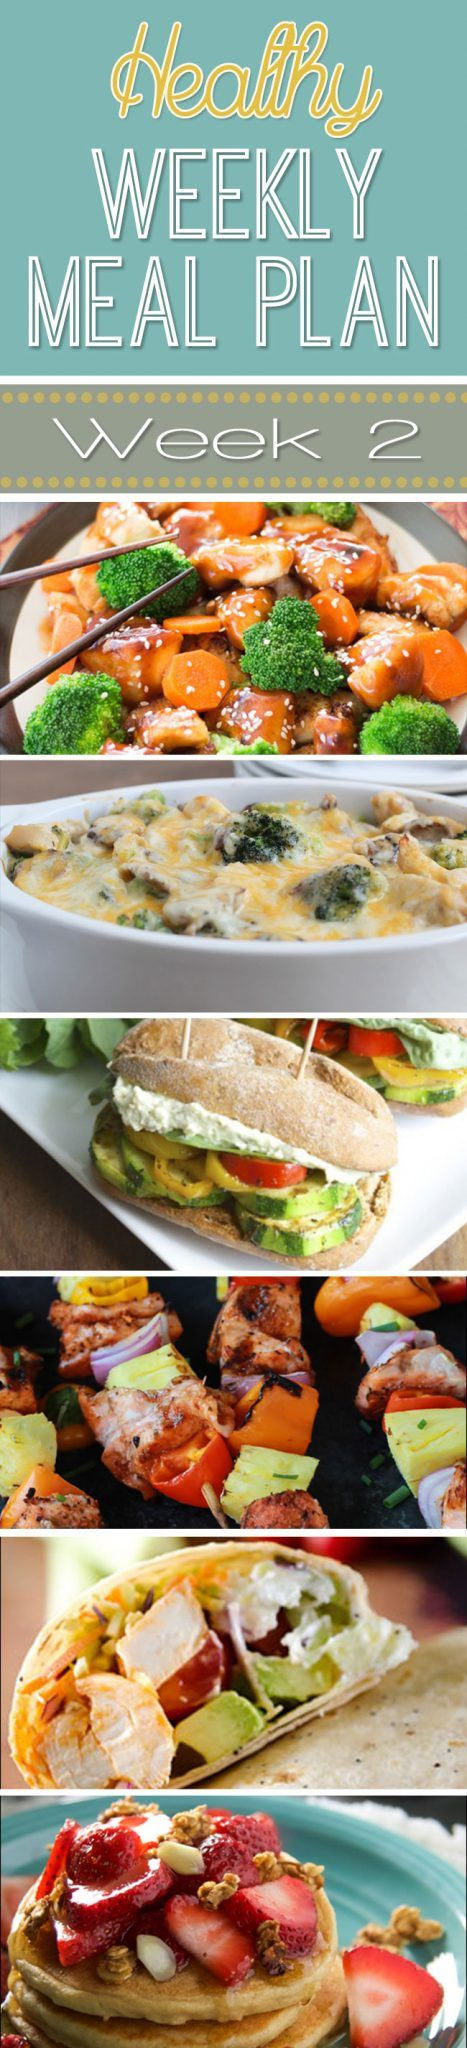 A delicious mix of healthy entrees, snacks and sides make up this Healthy Weekly Meal Plan for an easy week of nutritious meals your family will love!